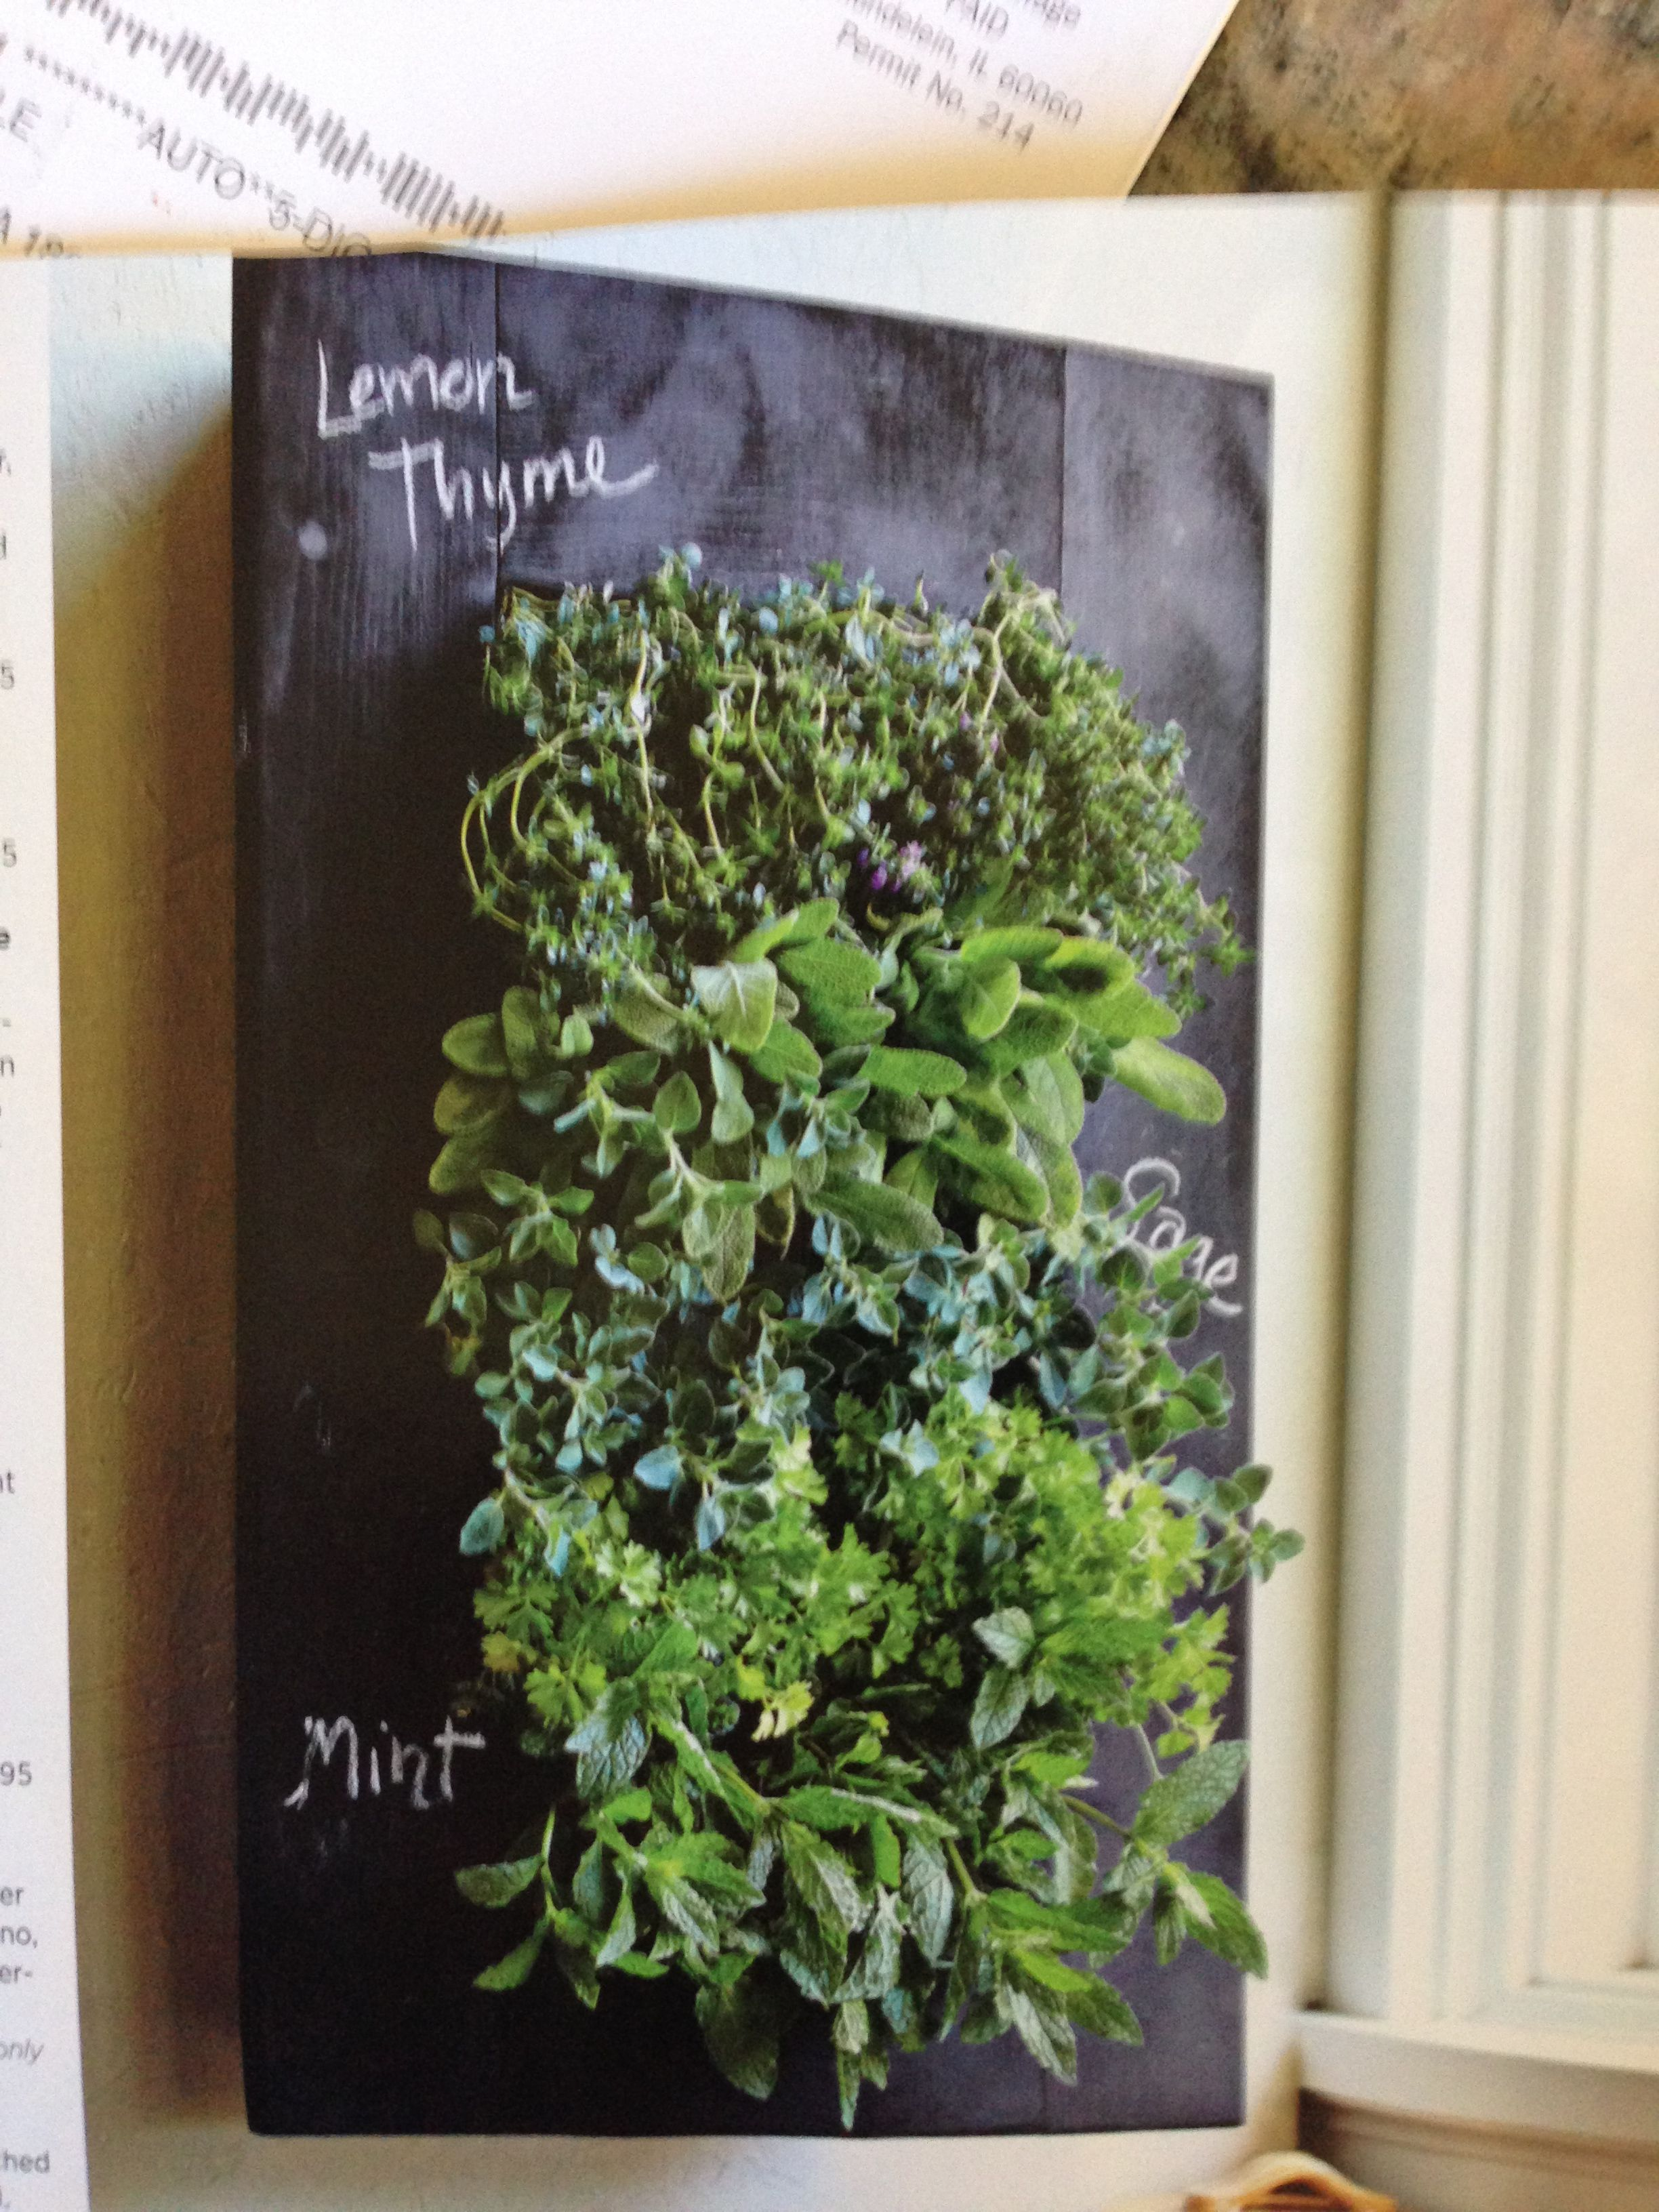 Chalkboard framed vertical herb garden from pottery barn...I know this vertical herb garden would be super DIY easy. rows (think of this slash  / shape going out from the the back wall of the box) and make sure you have a way to add water at the top and catch the runoff at the bottom. Find a frame or make your own, then spray-paint using chalkboard spray paint.